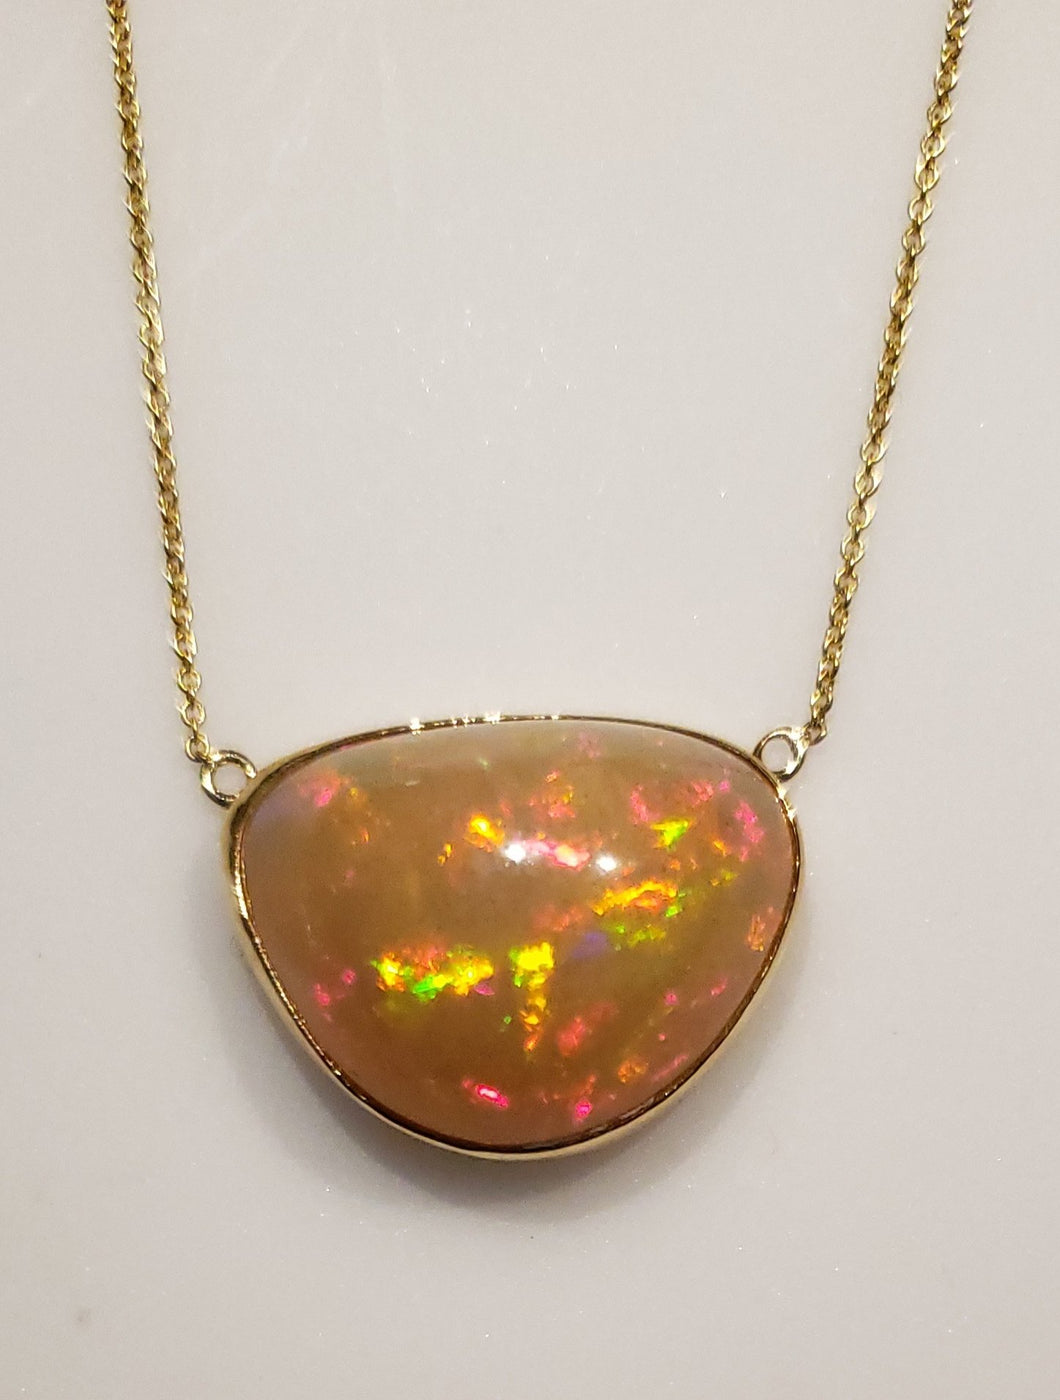 Orange Opal Pendant 14k Yellow Gold Chain Necklace #164